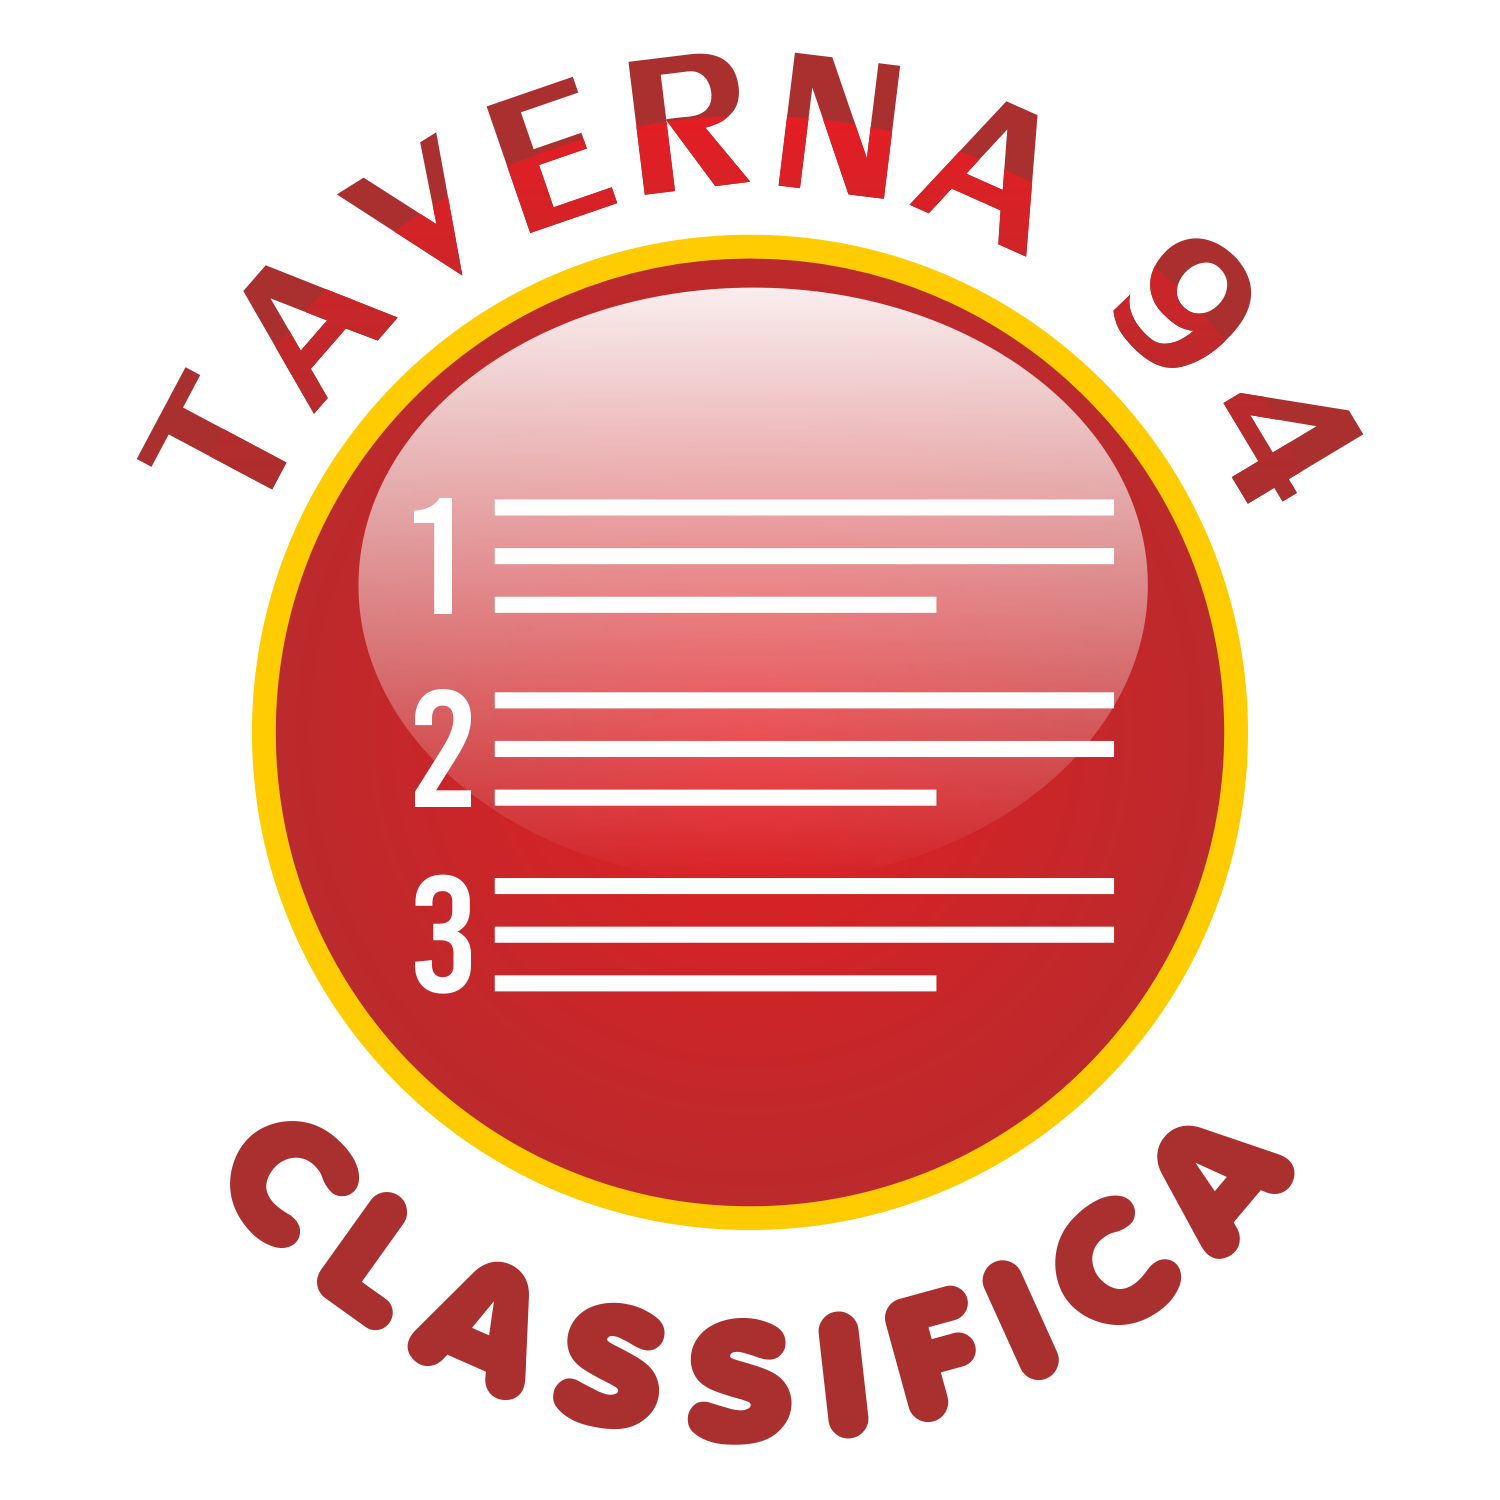 Taverna 94 Icona Classifica PNG